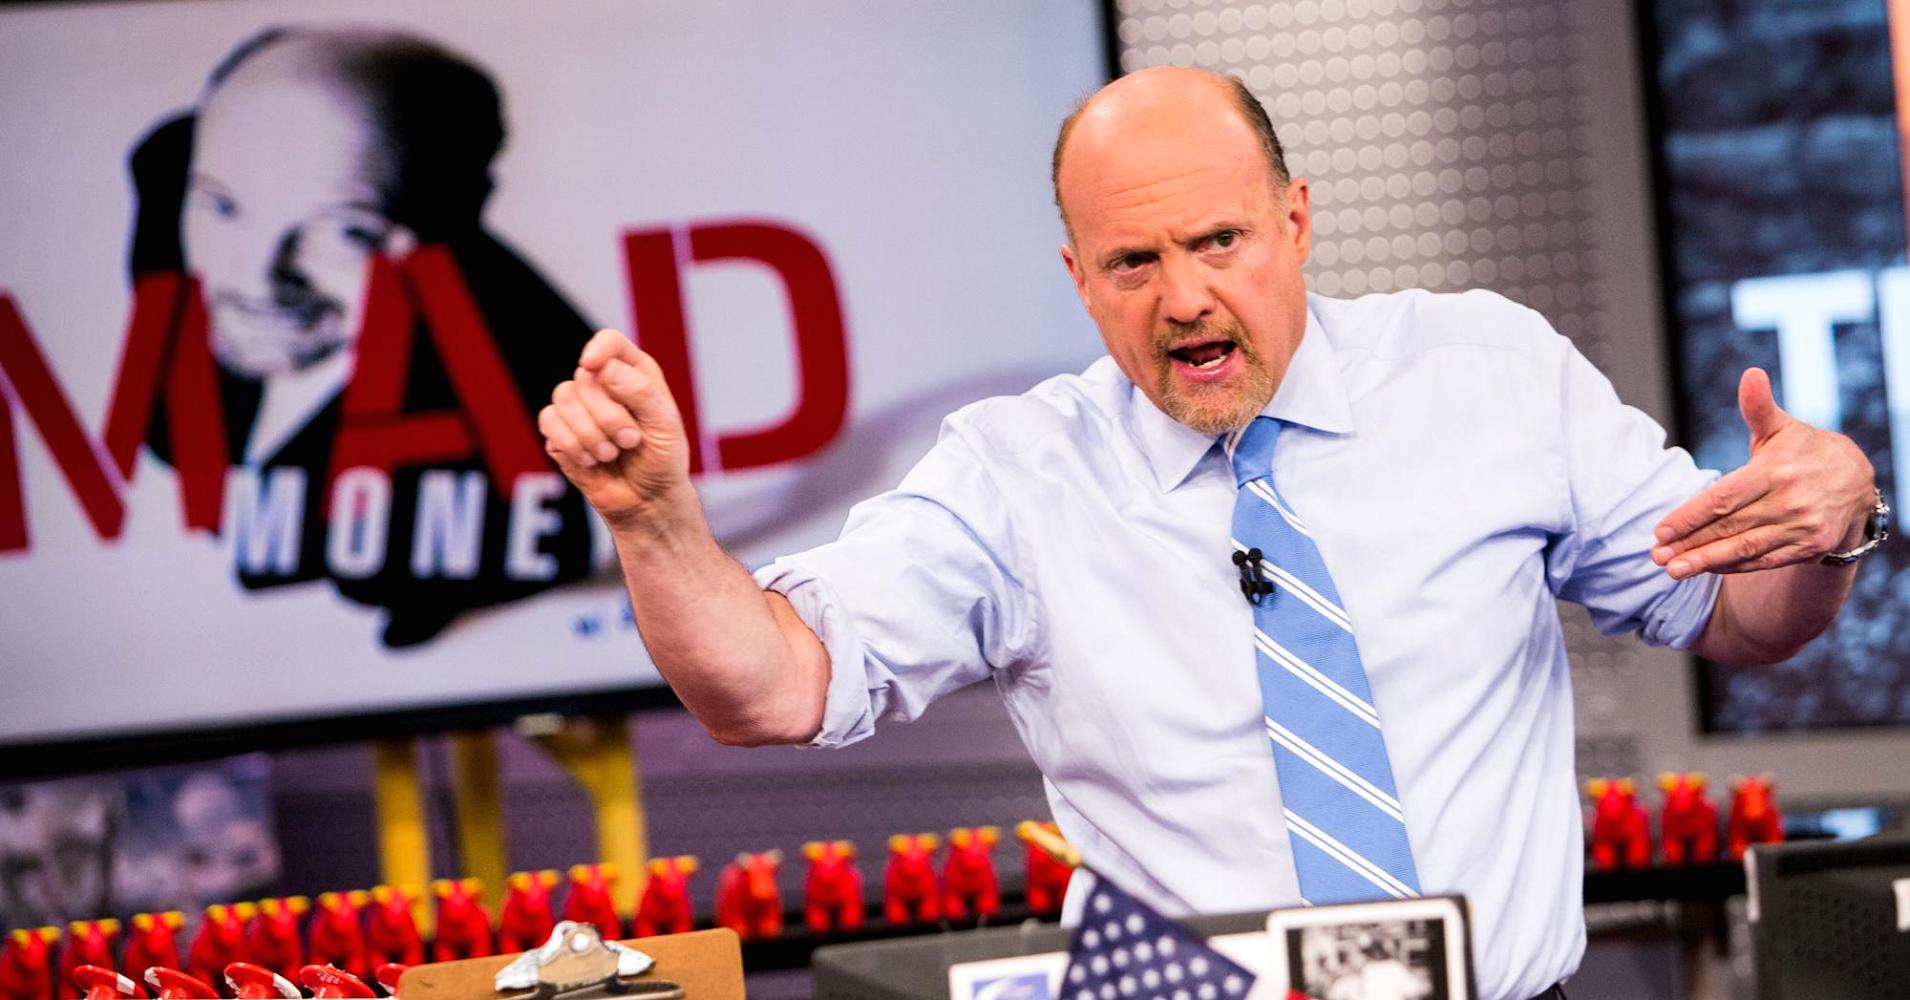 Jim cramer gambling stock recommendations problems about sports gambling